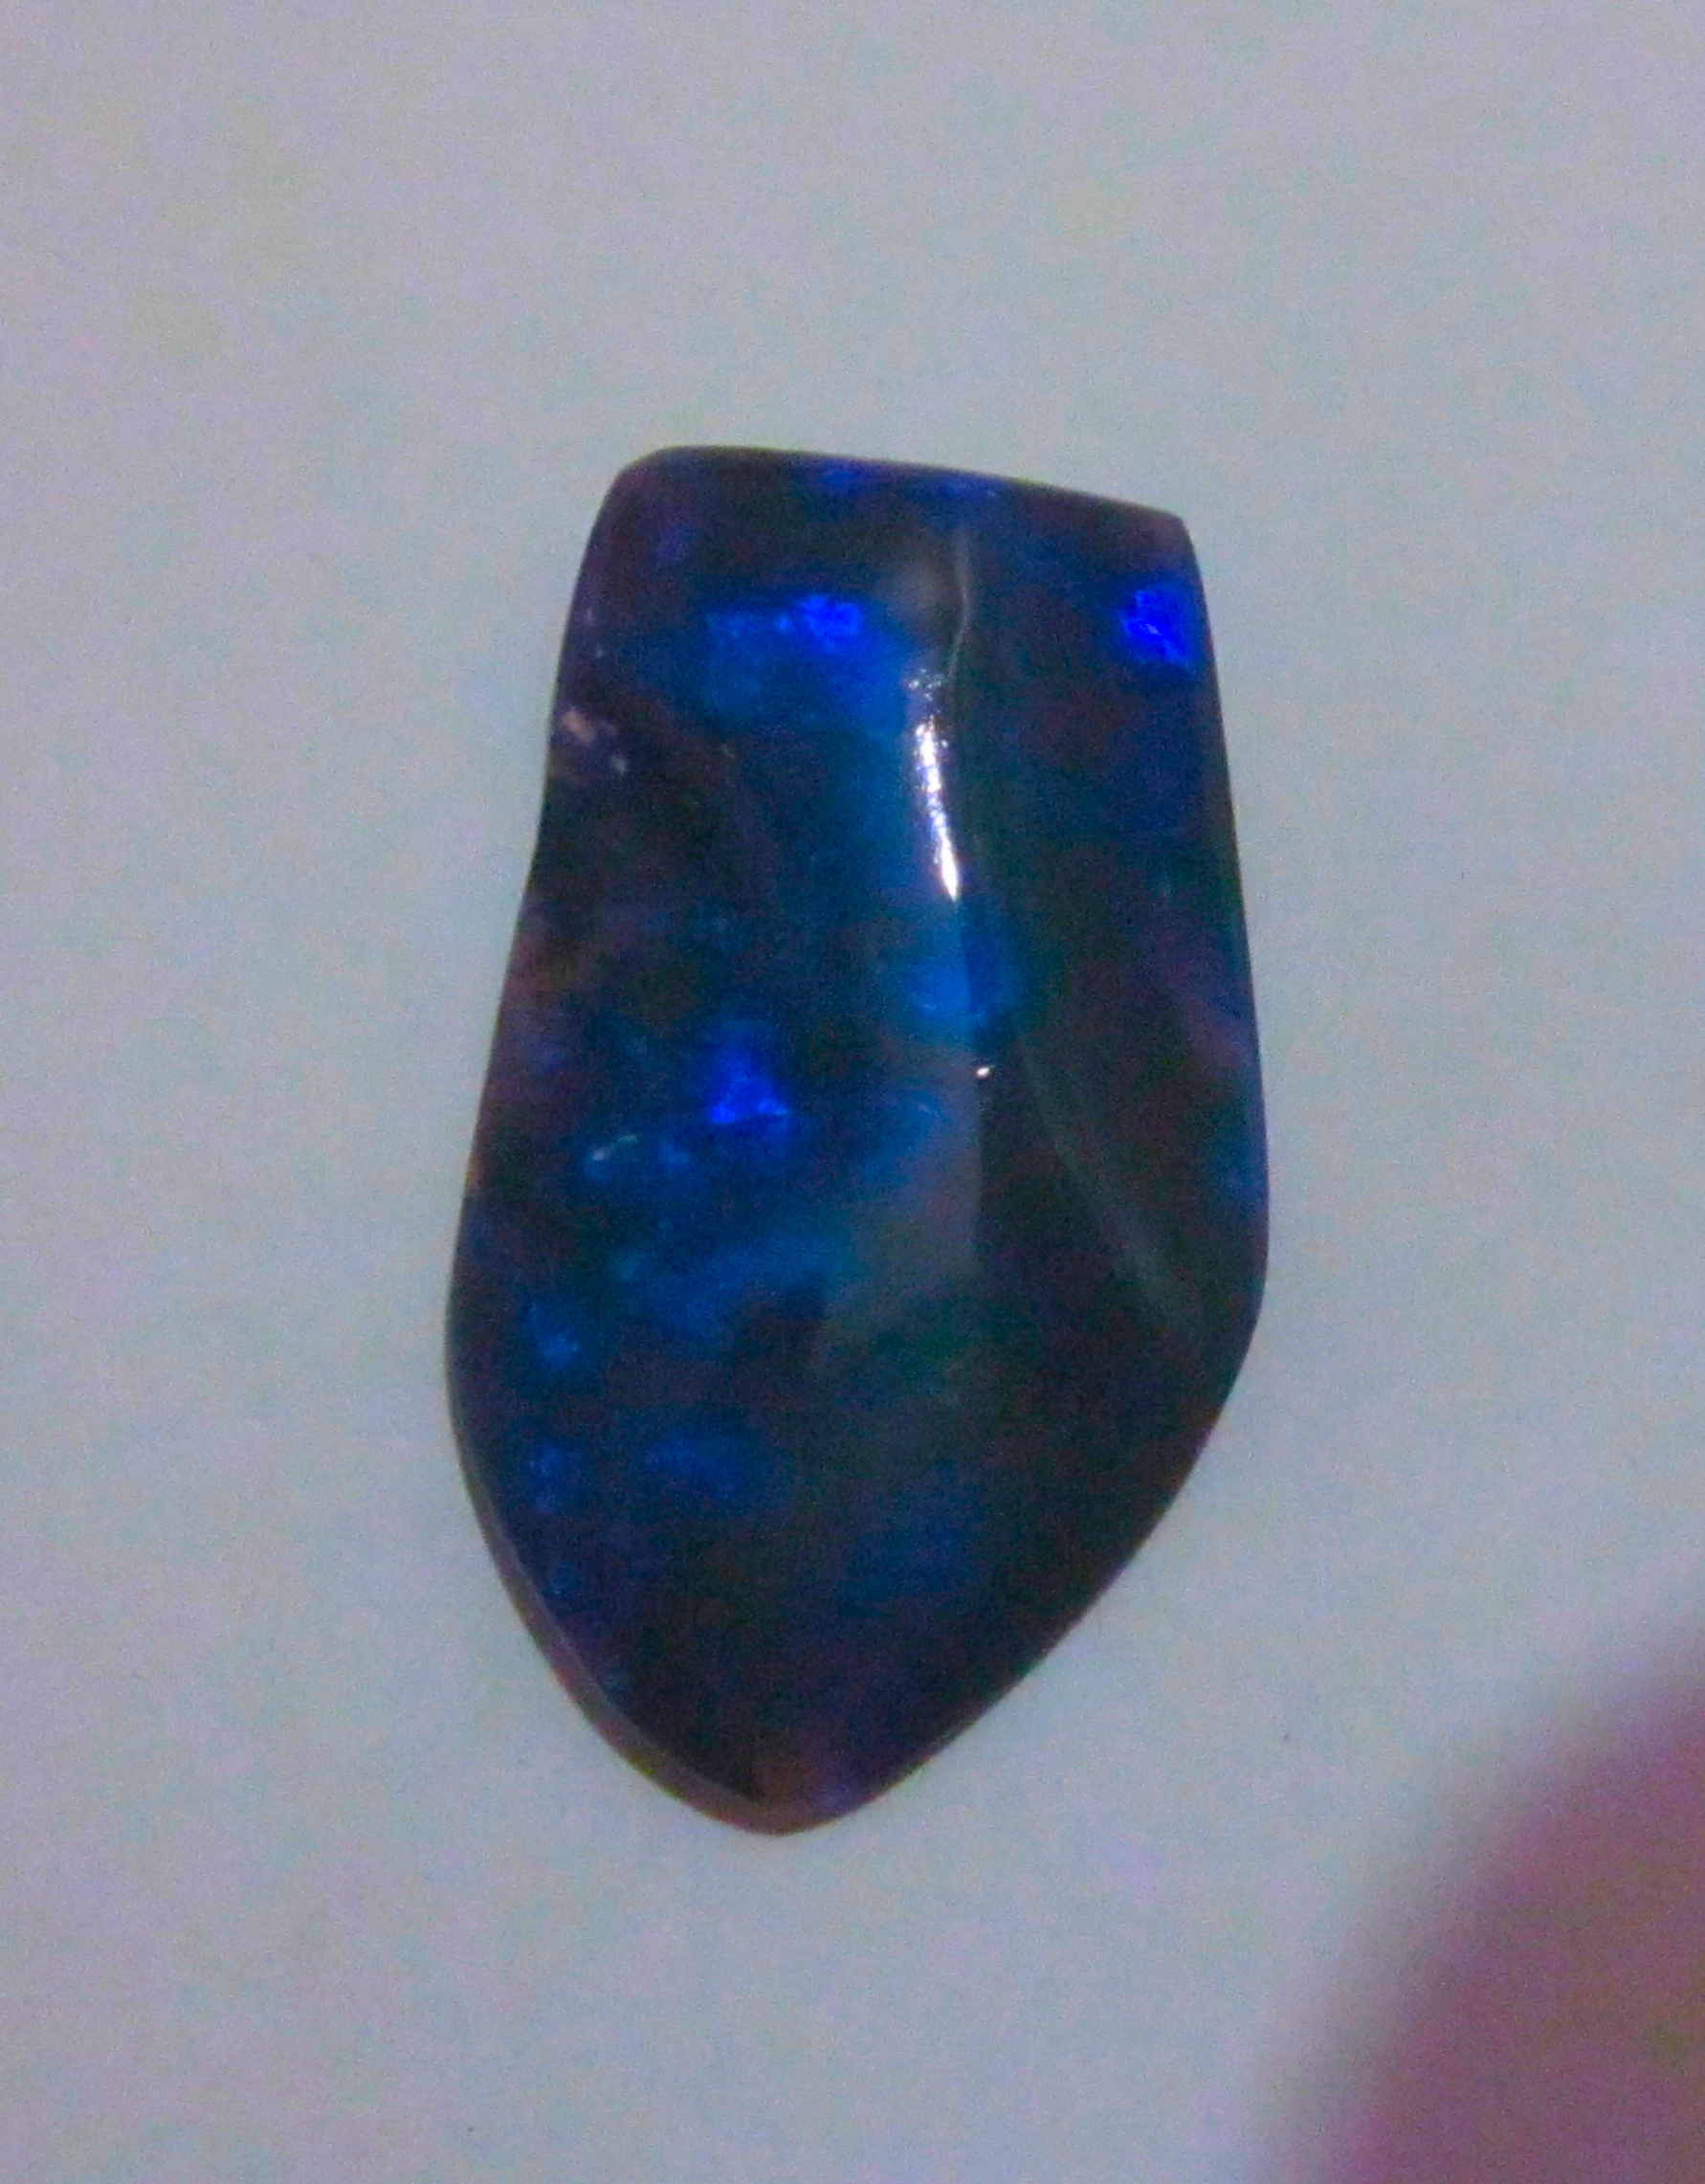 opal,opal freeform,opal carvings,opal sculpture